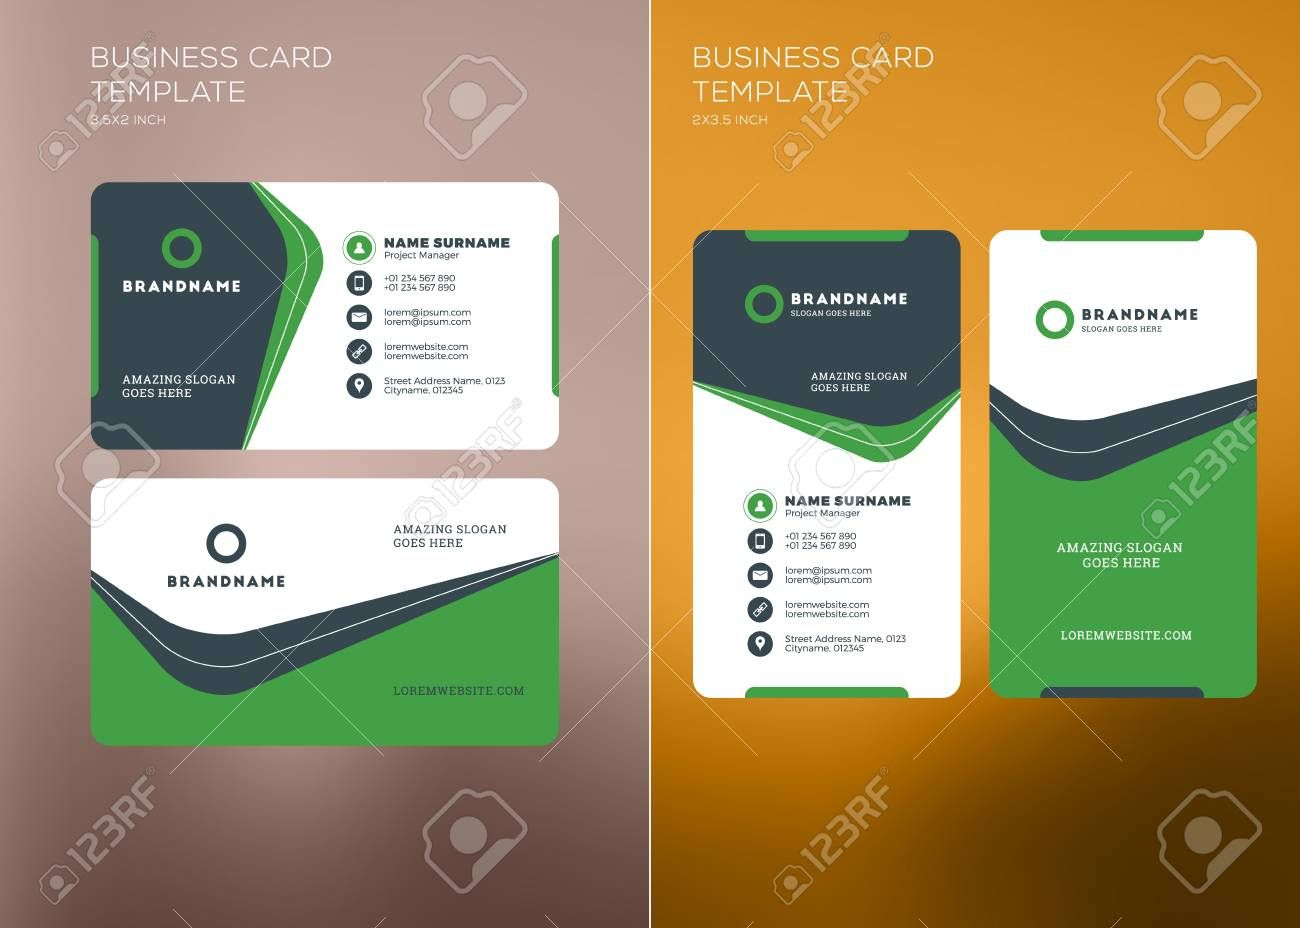 Corporate Business Card Print Template Personal Visiting Card Intended For Company Busin Printing Business Cards Company Business Cards Google Business Card